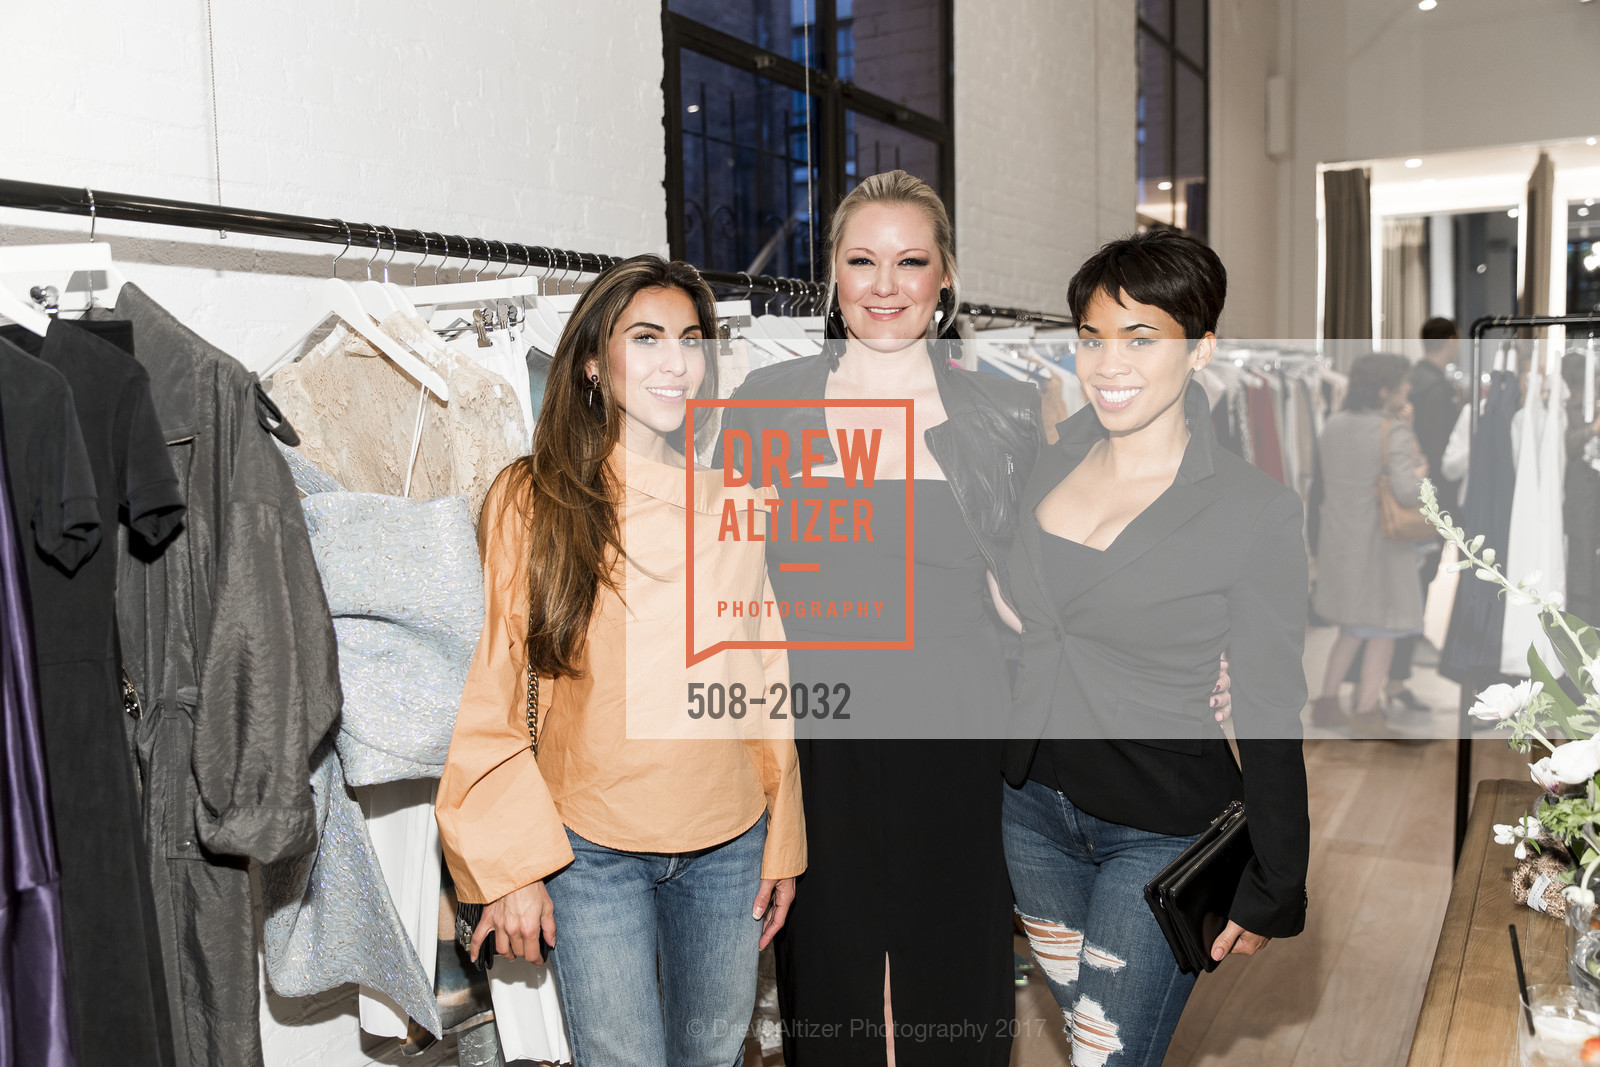 Nazy Fotoohi, Liz Curtis, Moanalani Jeffrey, Nellie Partow F17 Trunkshow at PIA (The Store), PIA. 414 Jackson St.  San Francisco, California, April 19th, 2017